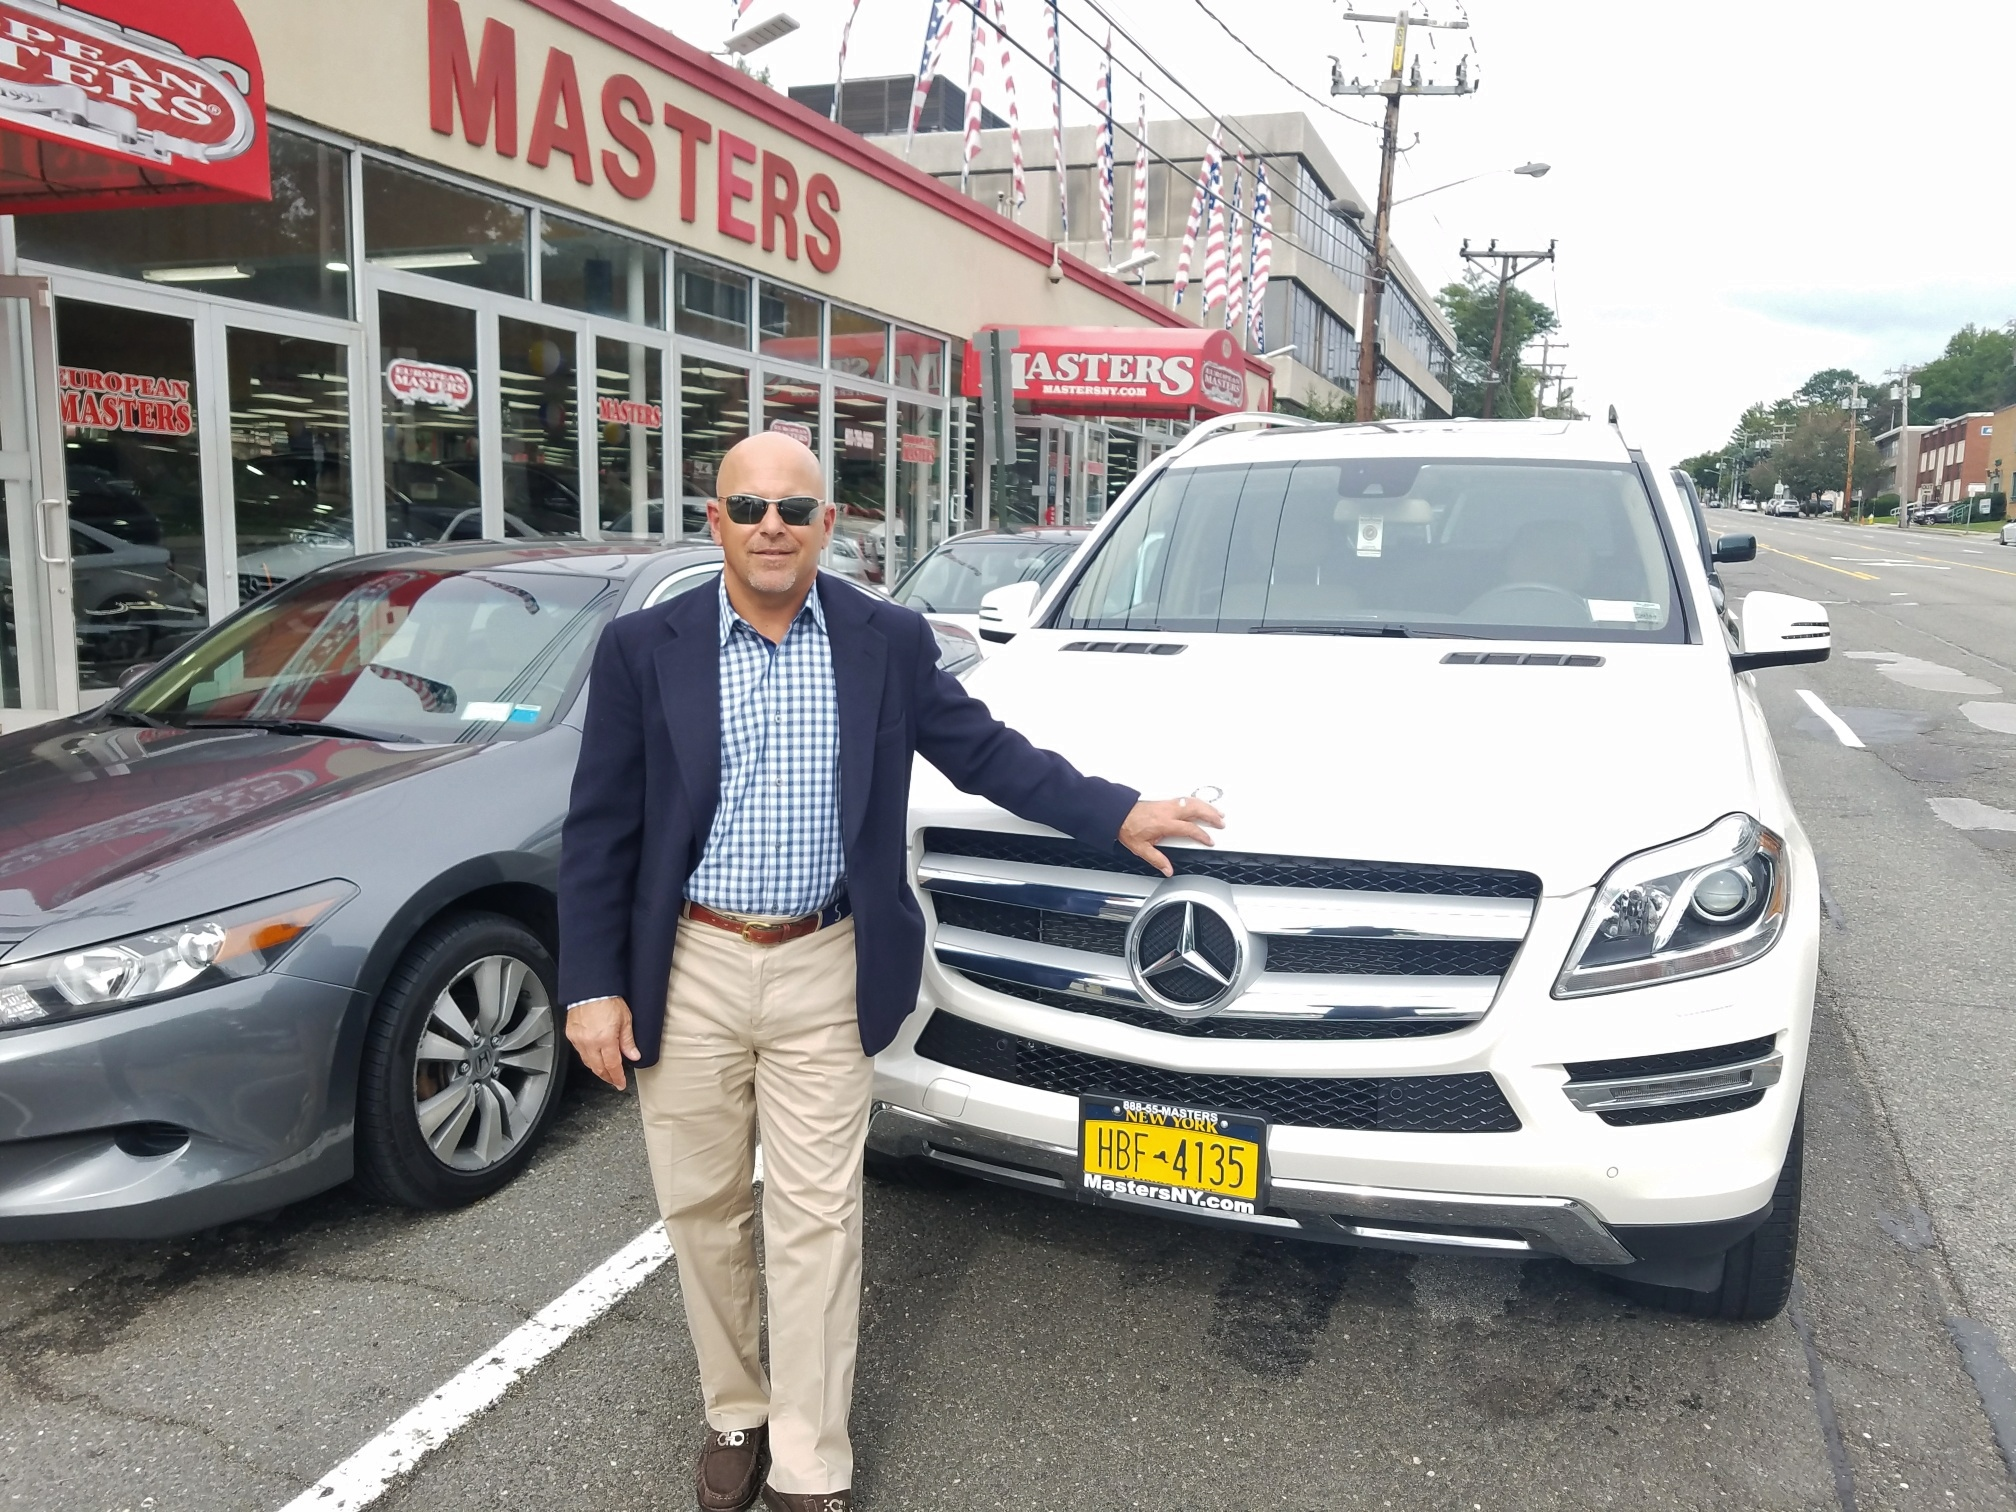 European masters 275 northern blvd great neck ny for Mercedes benz northern blvd